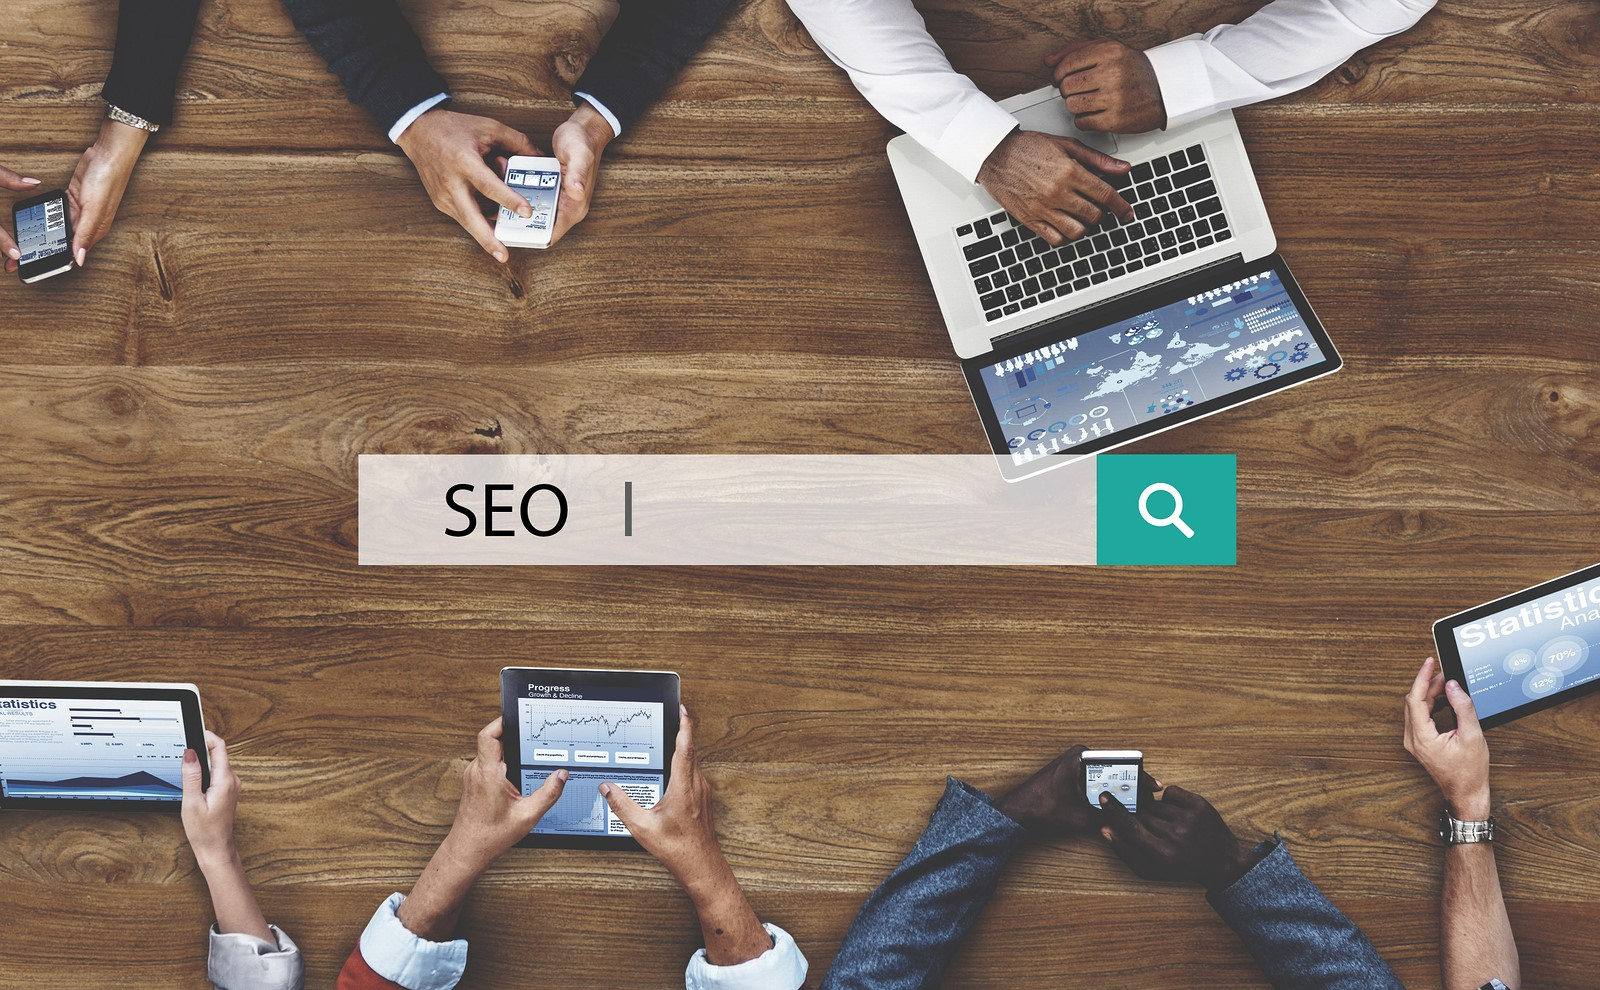 seo-services-2017 What Enterprises in London Should Expect from SEO Services in 2017